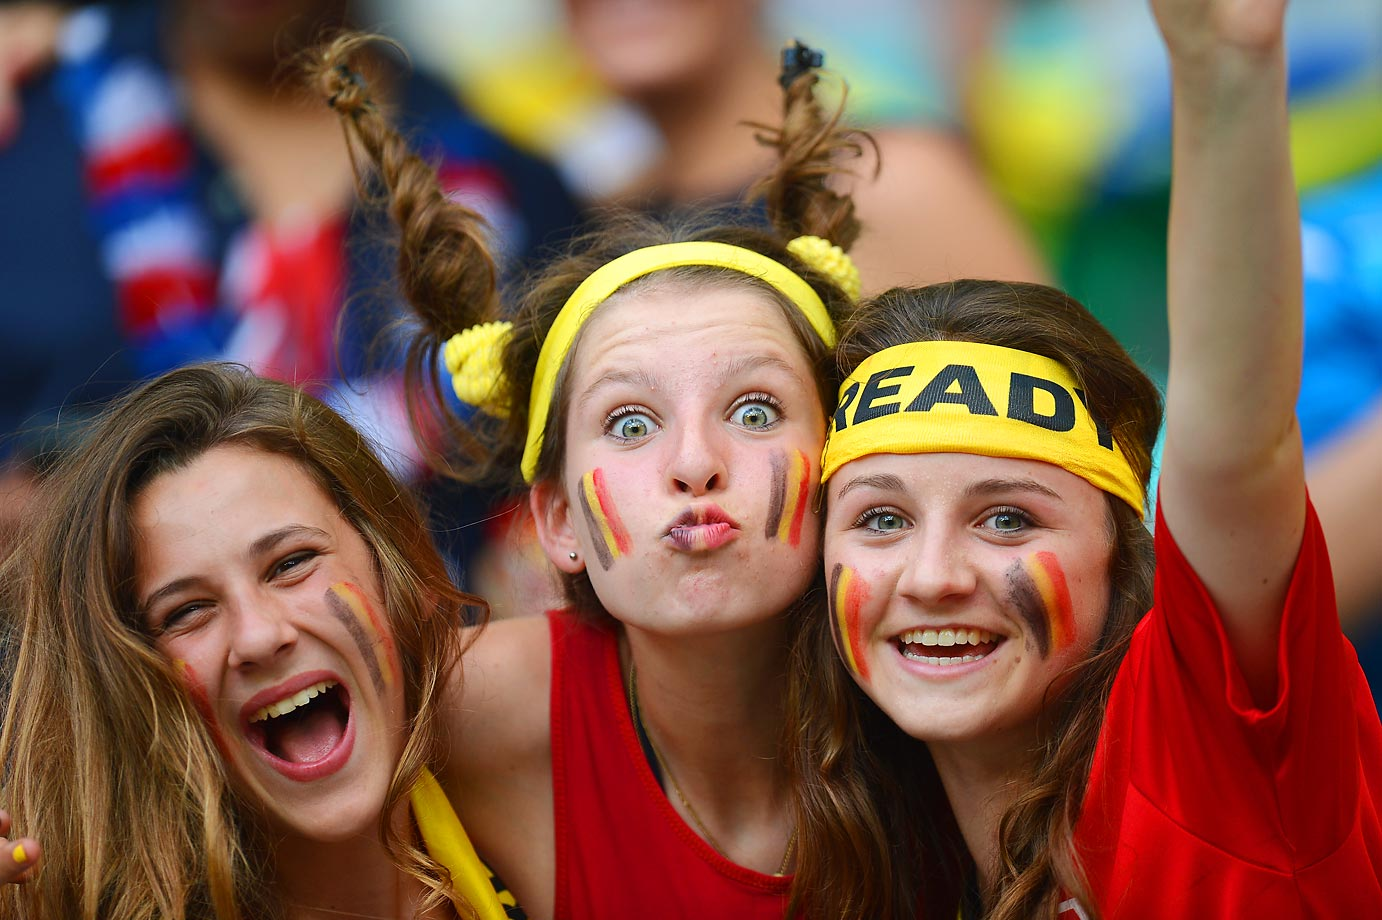 Belgium fans soak up the atmosphere prior to the game against the U.S.